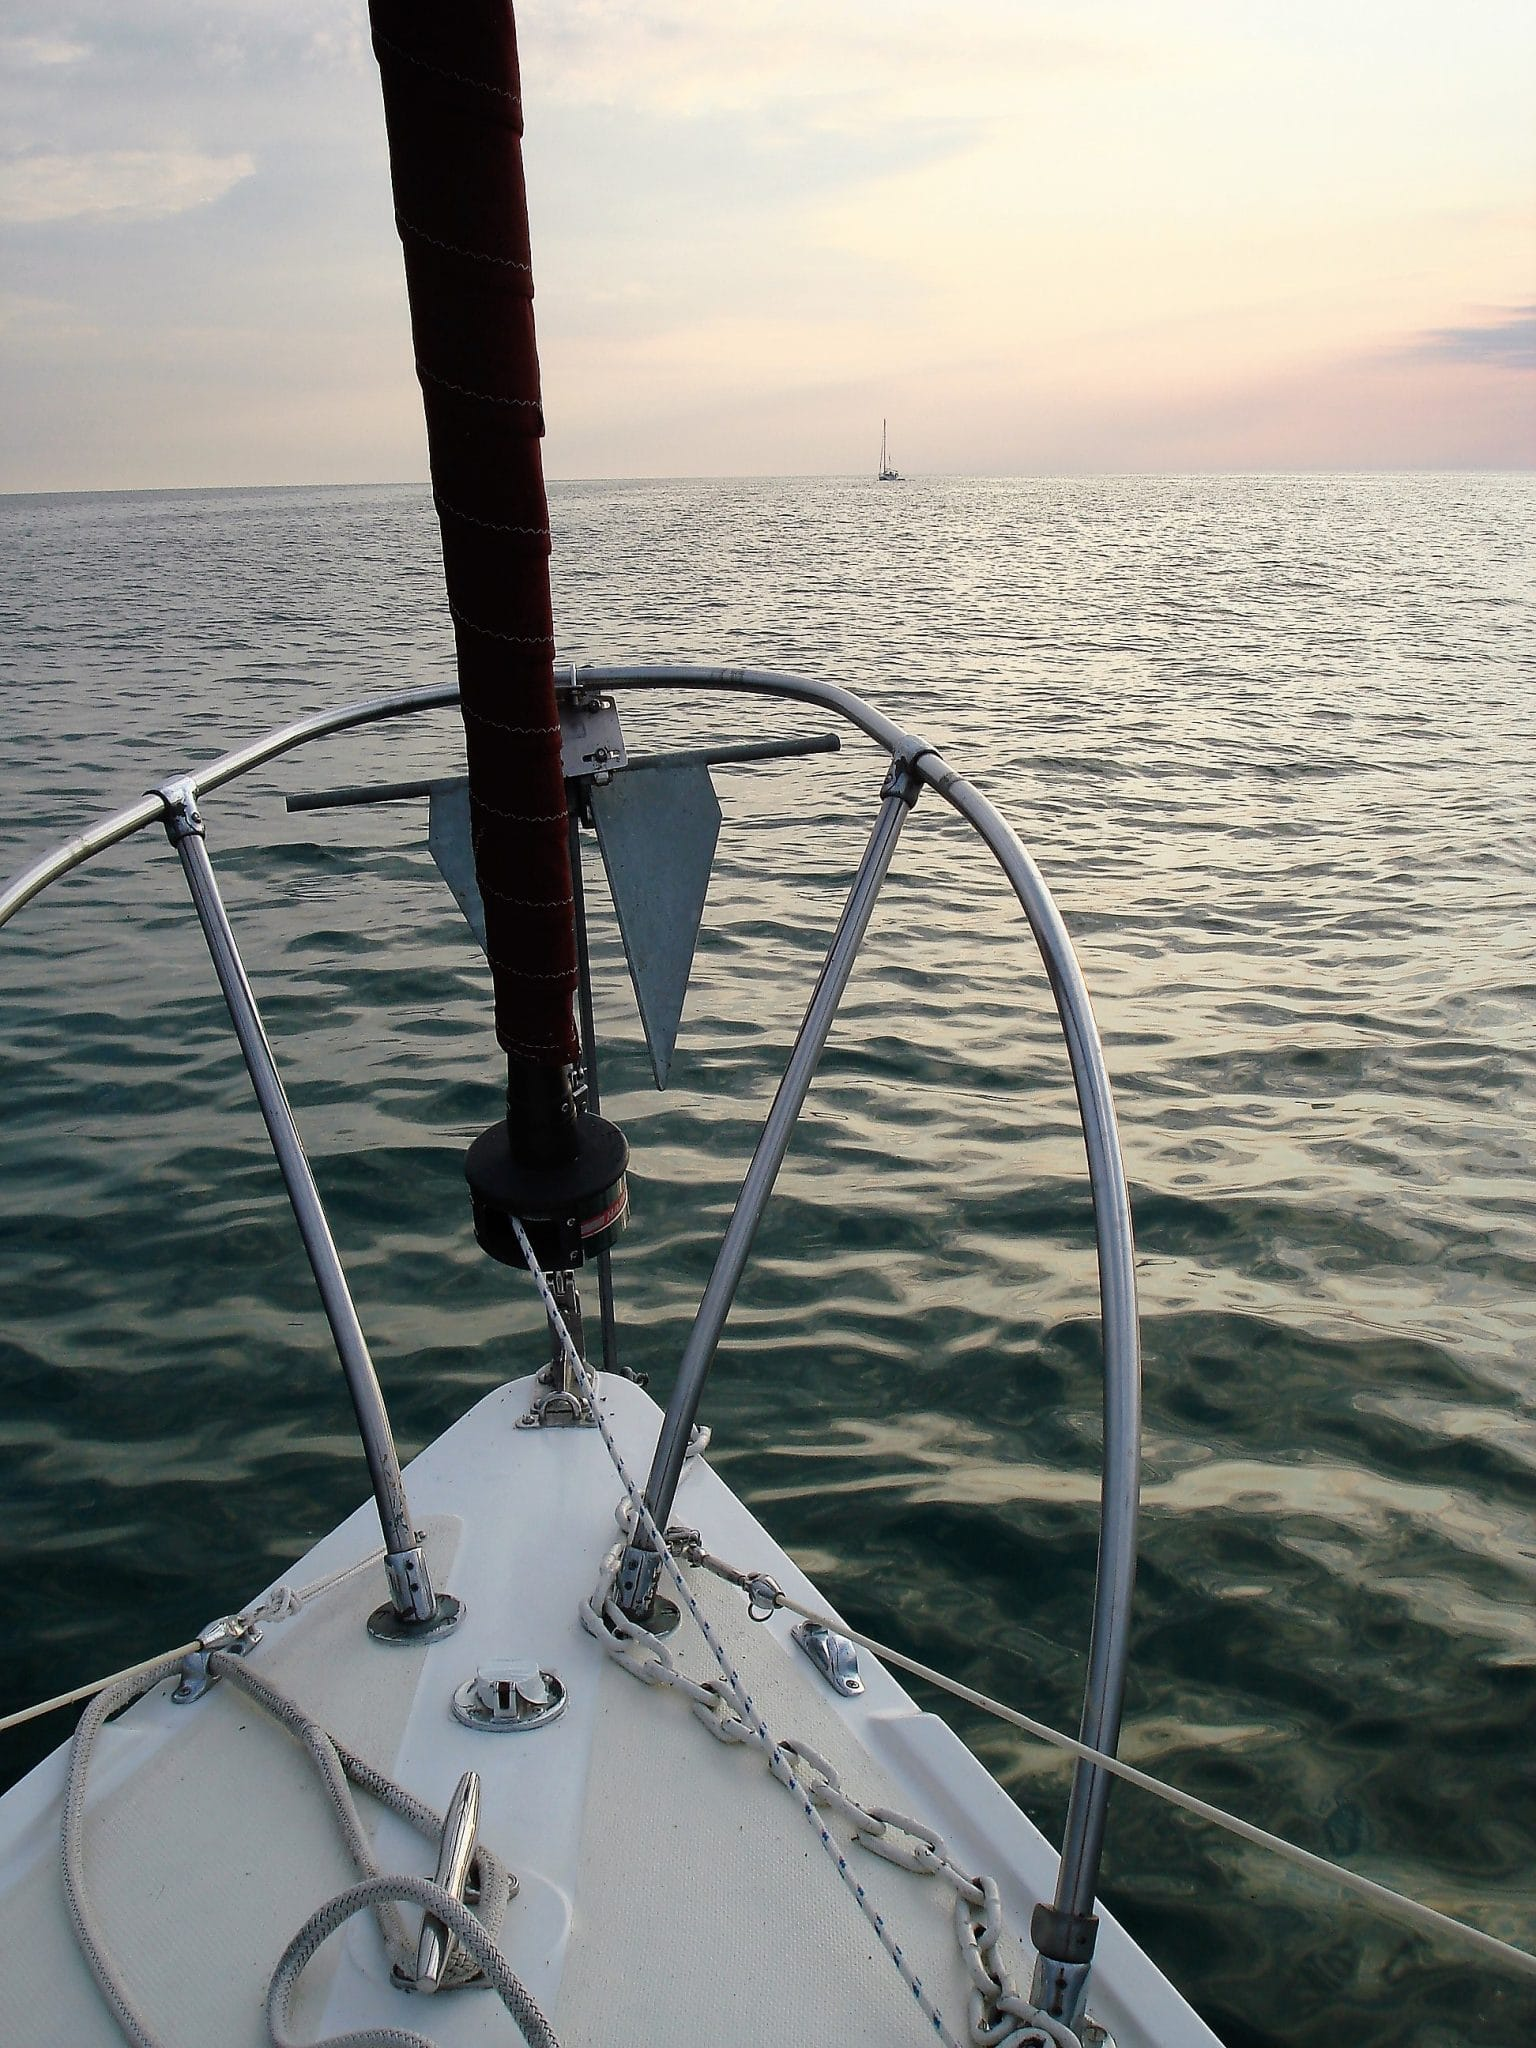 Sailing on Saginaw Bay